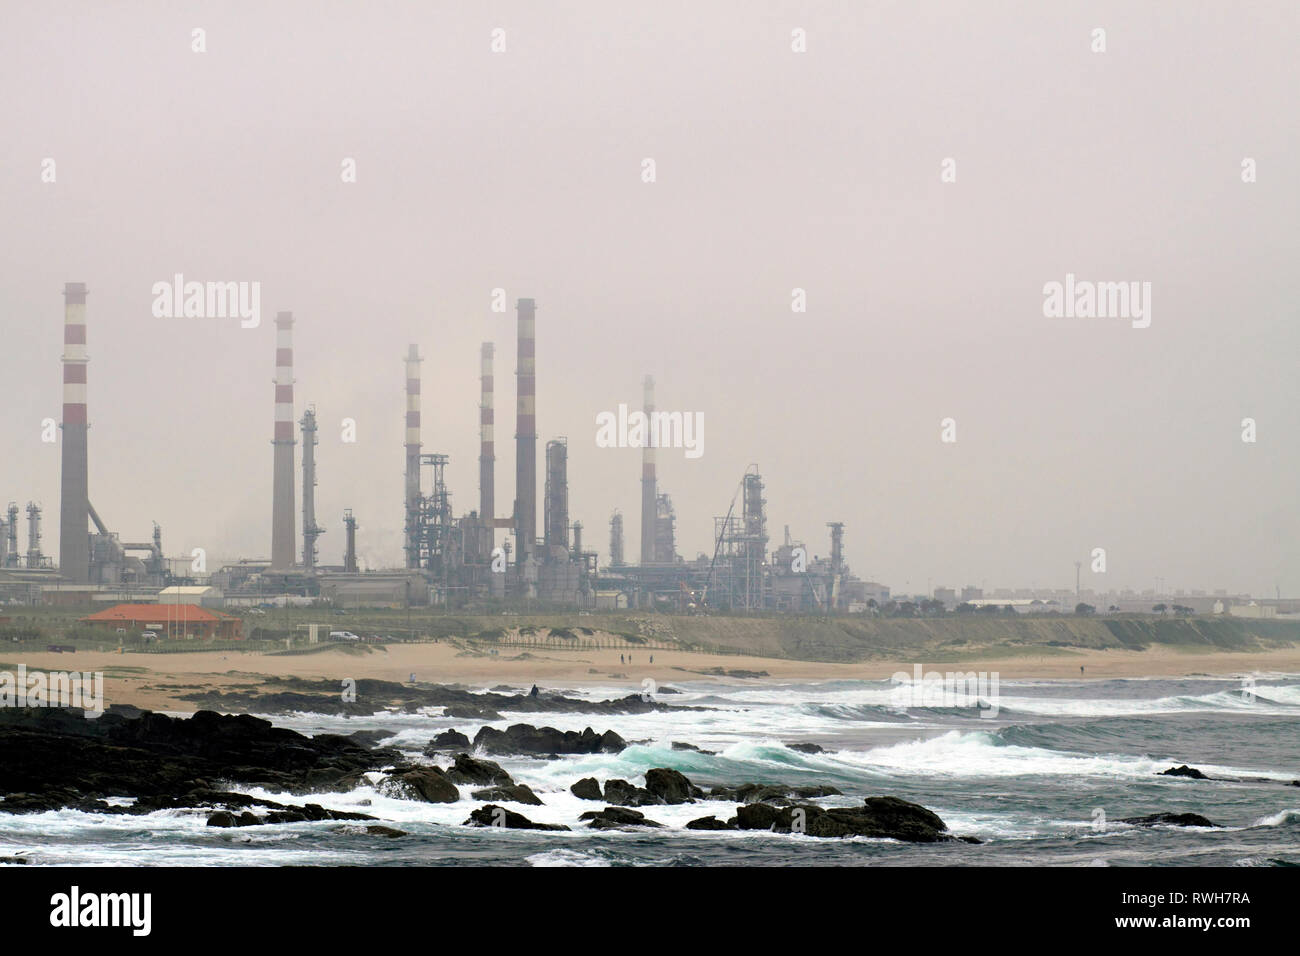 Oil refinery near the sea in a mysty late evening - Stock Image